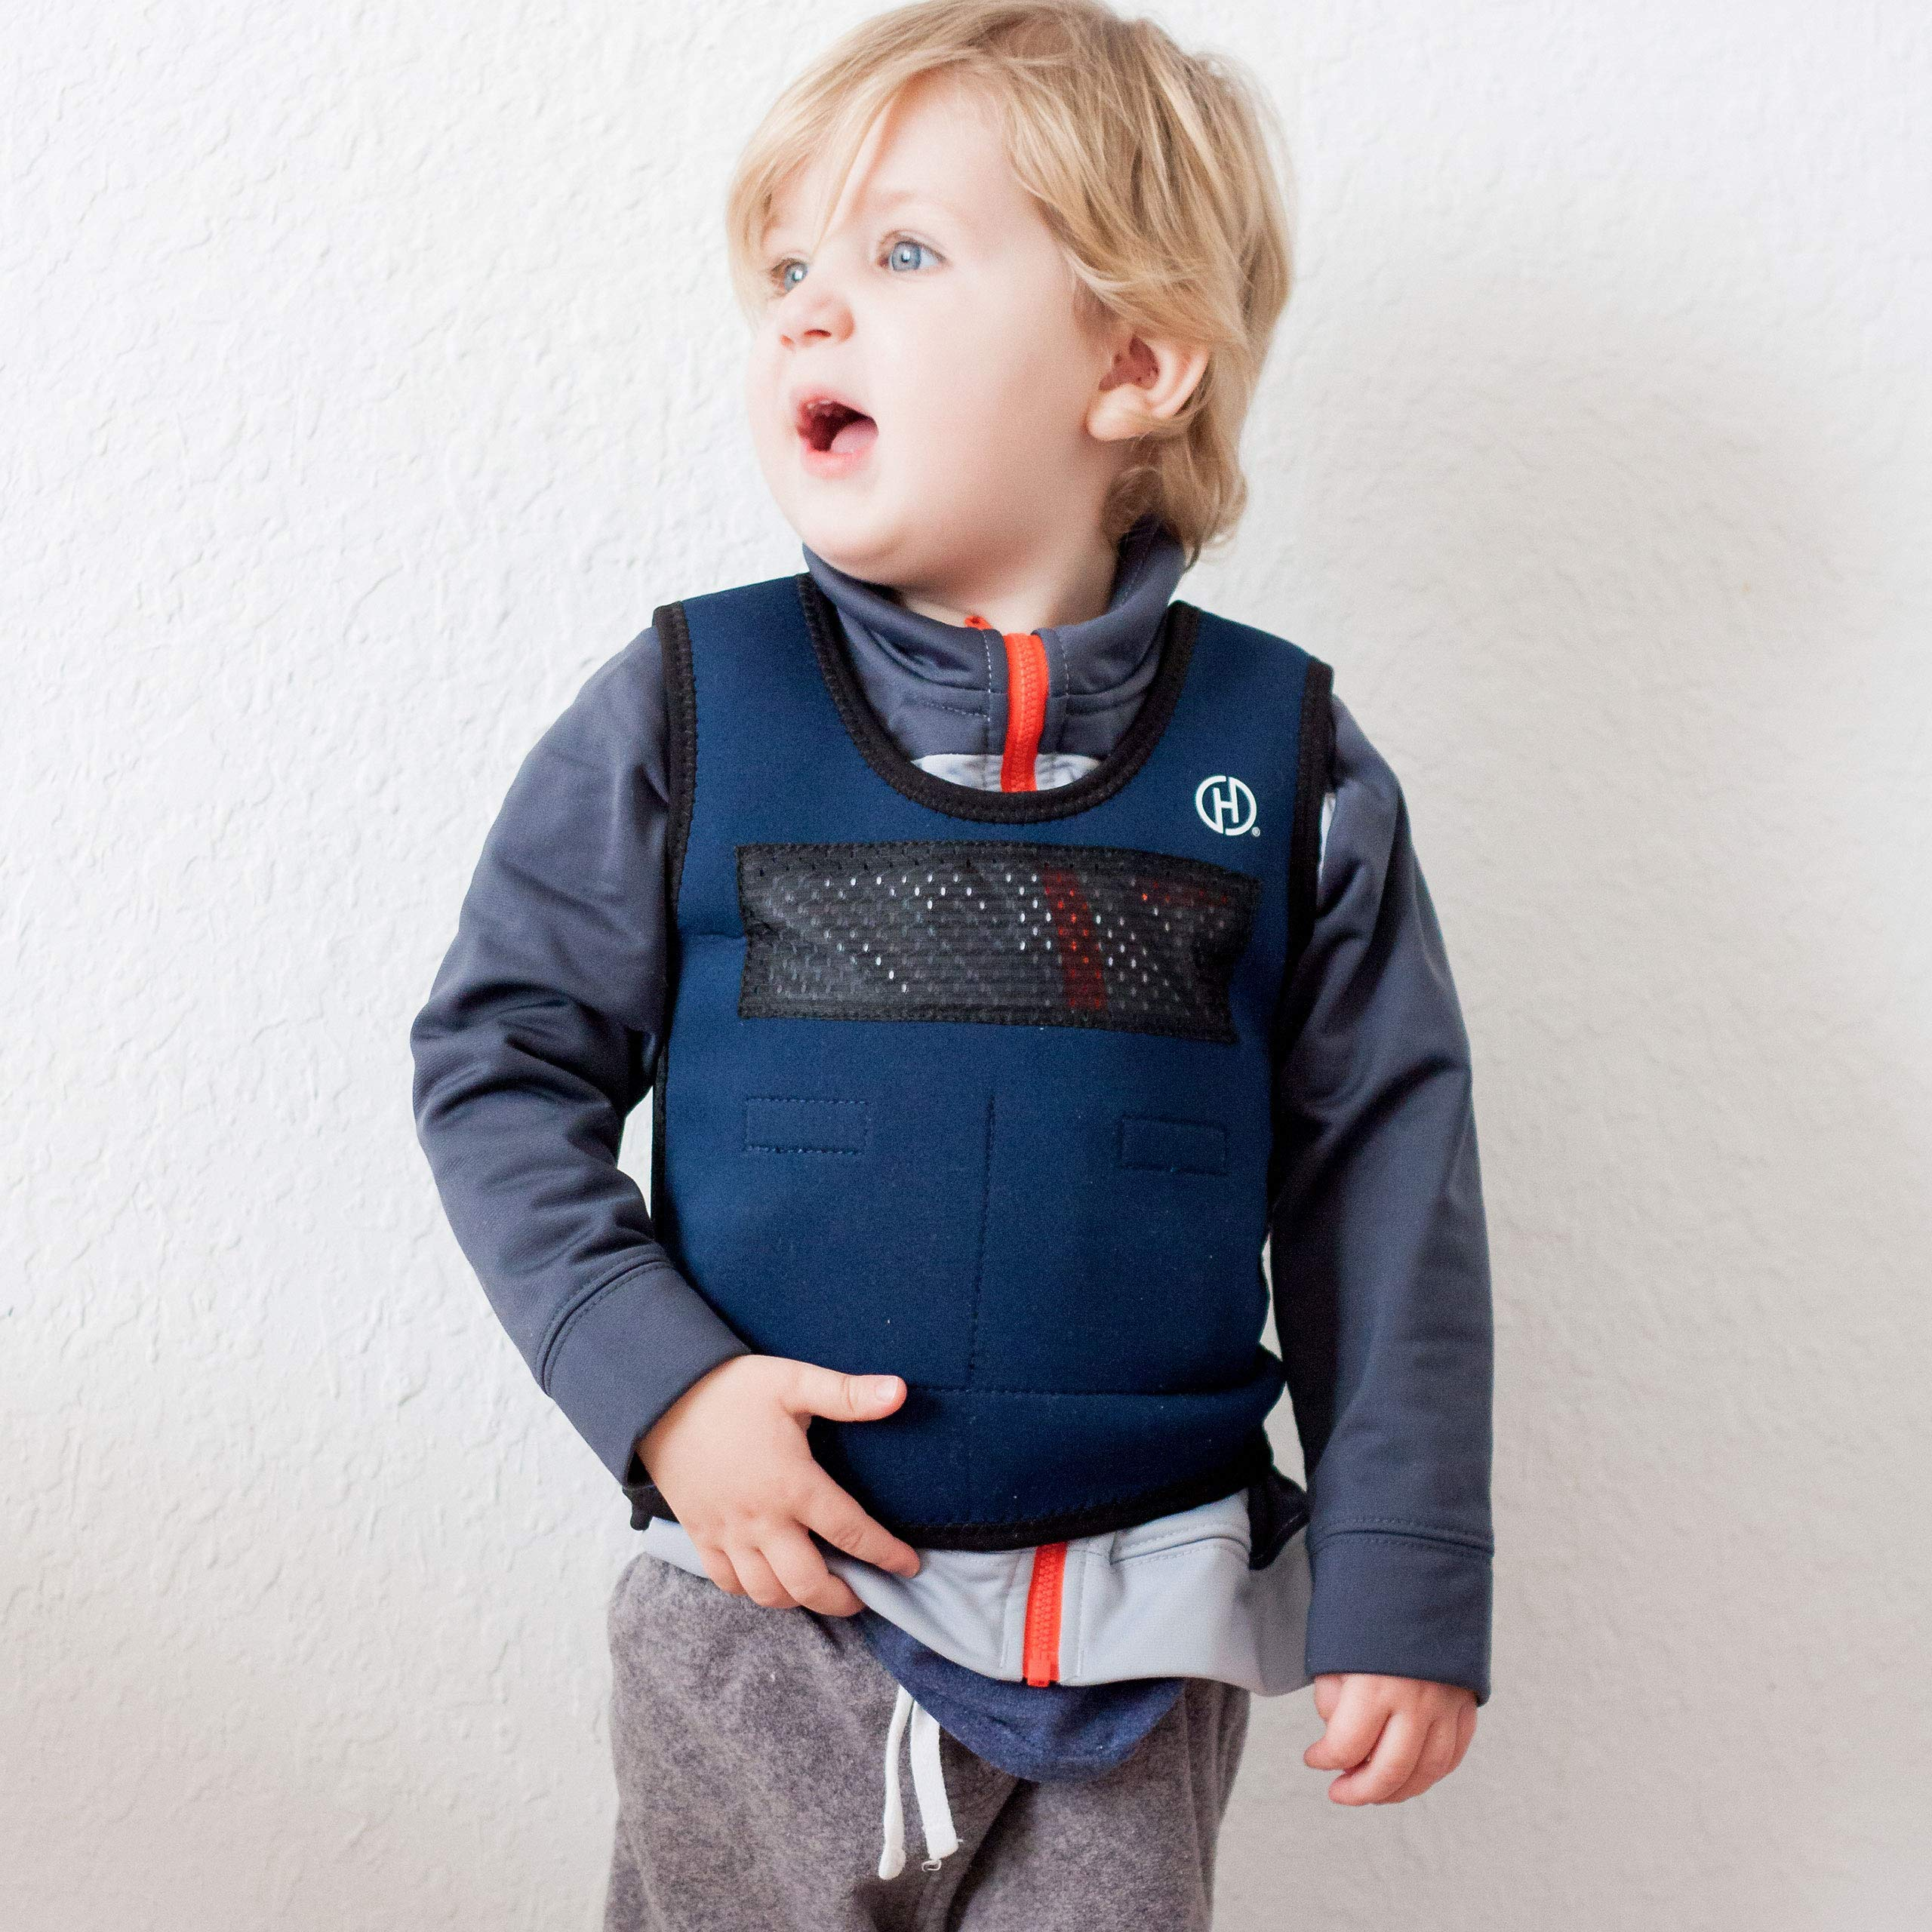 Weighted Compression Vest for Kids (Ages 2 to 4) by Harkla - Helps with Autism, ADHD, Mood, Sensory Overload - Sensory Weighted Compression Vest for Children with Therapy Benefits